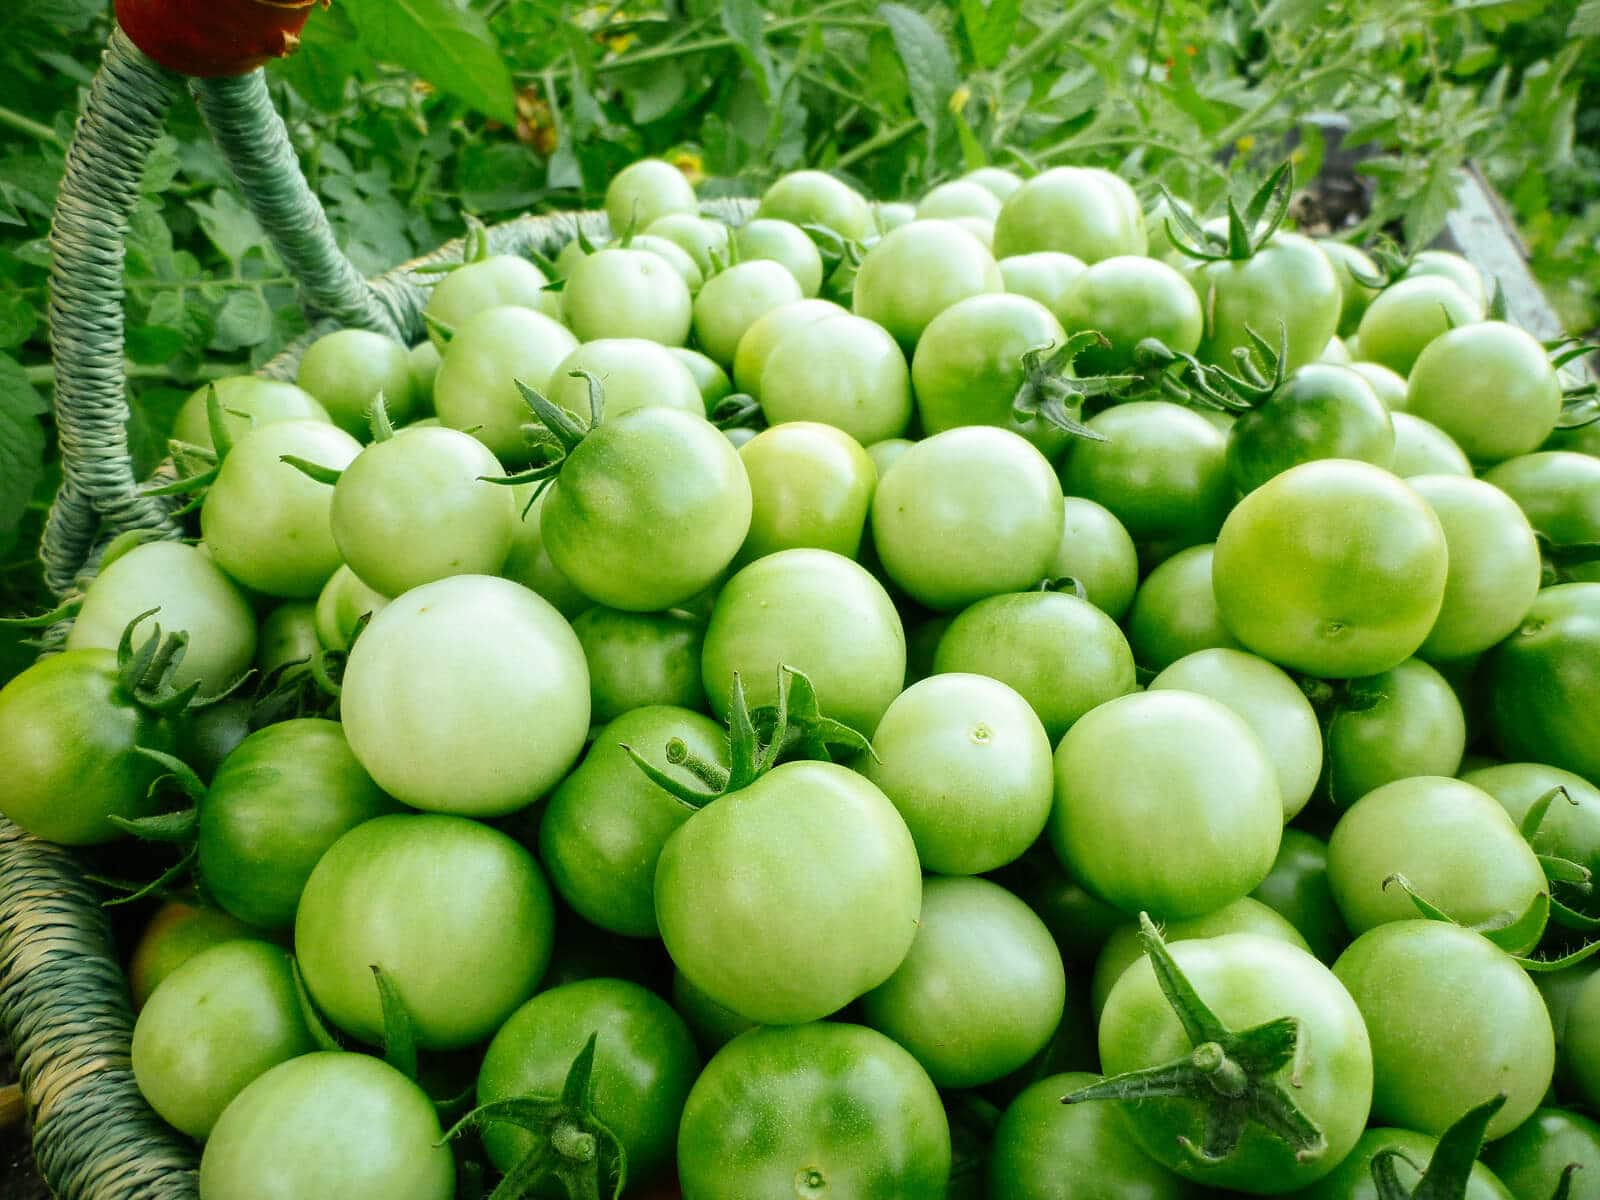 Slice that mountain of green tomatoes